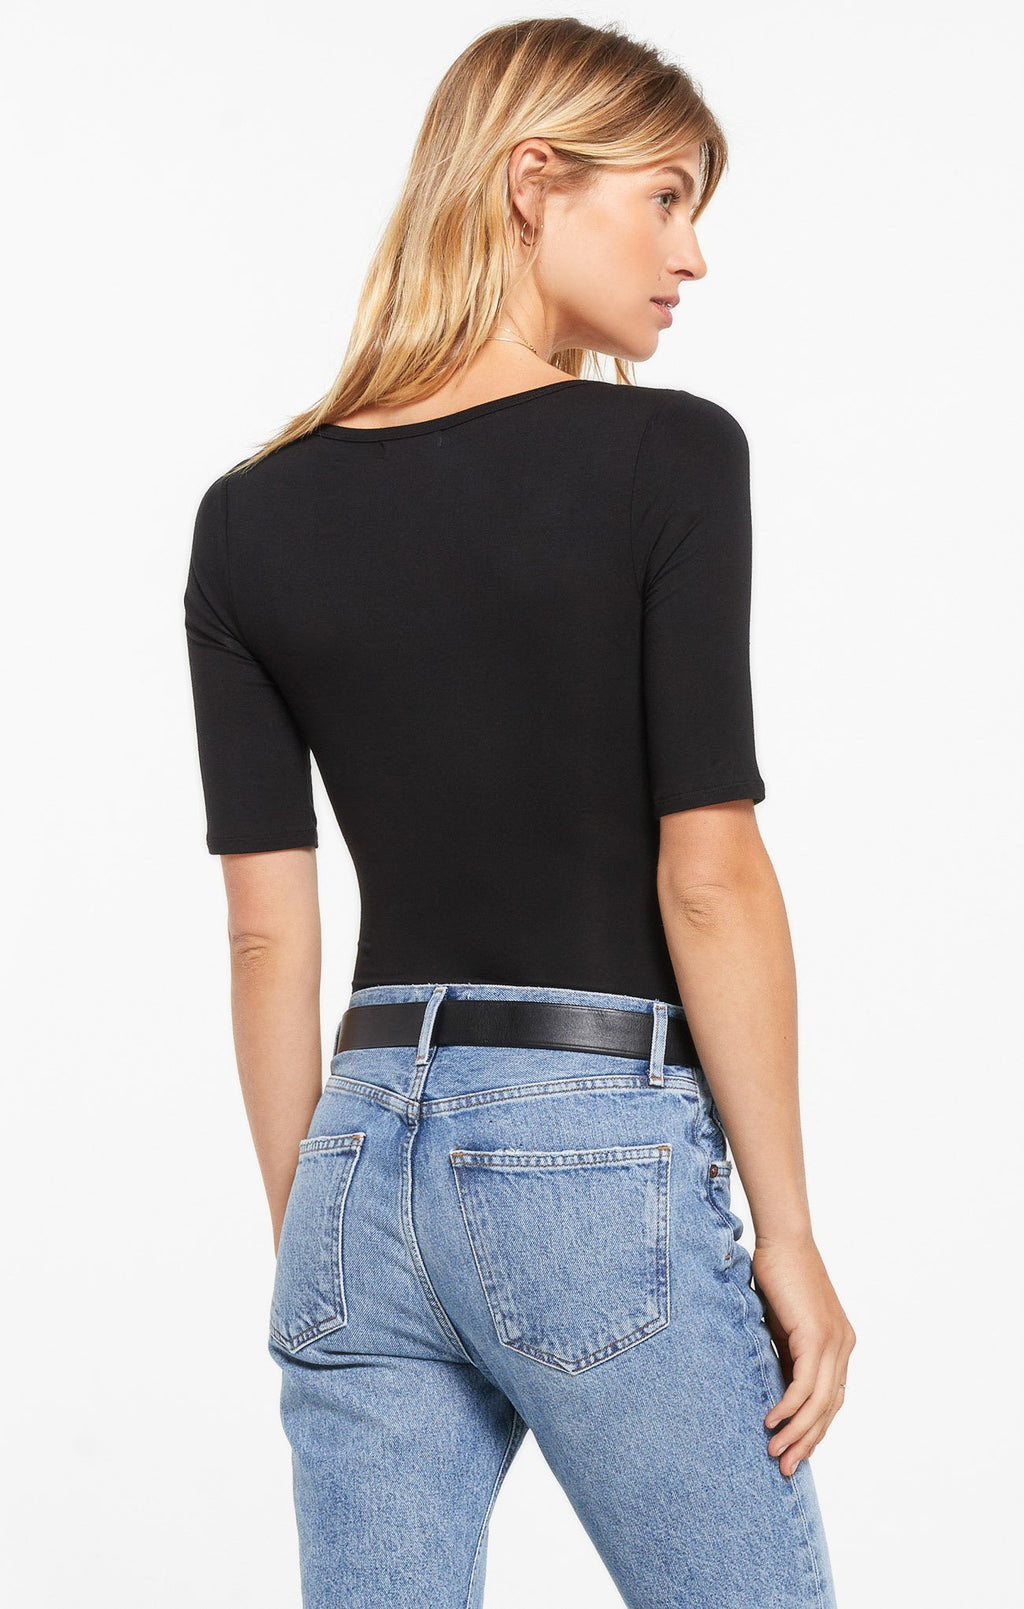 The Cara Scoop Bodysuit